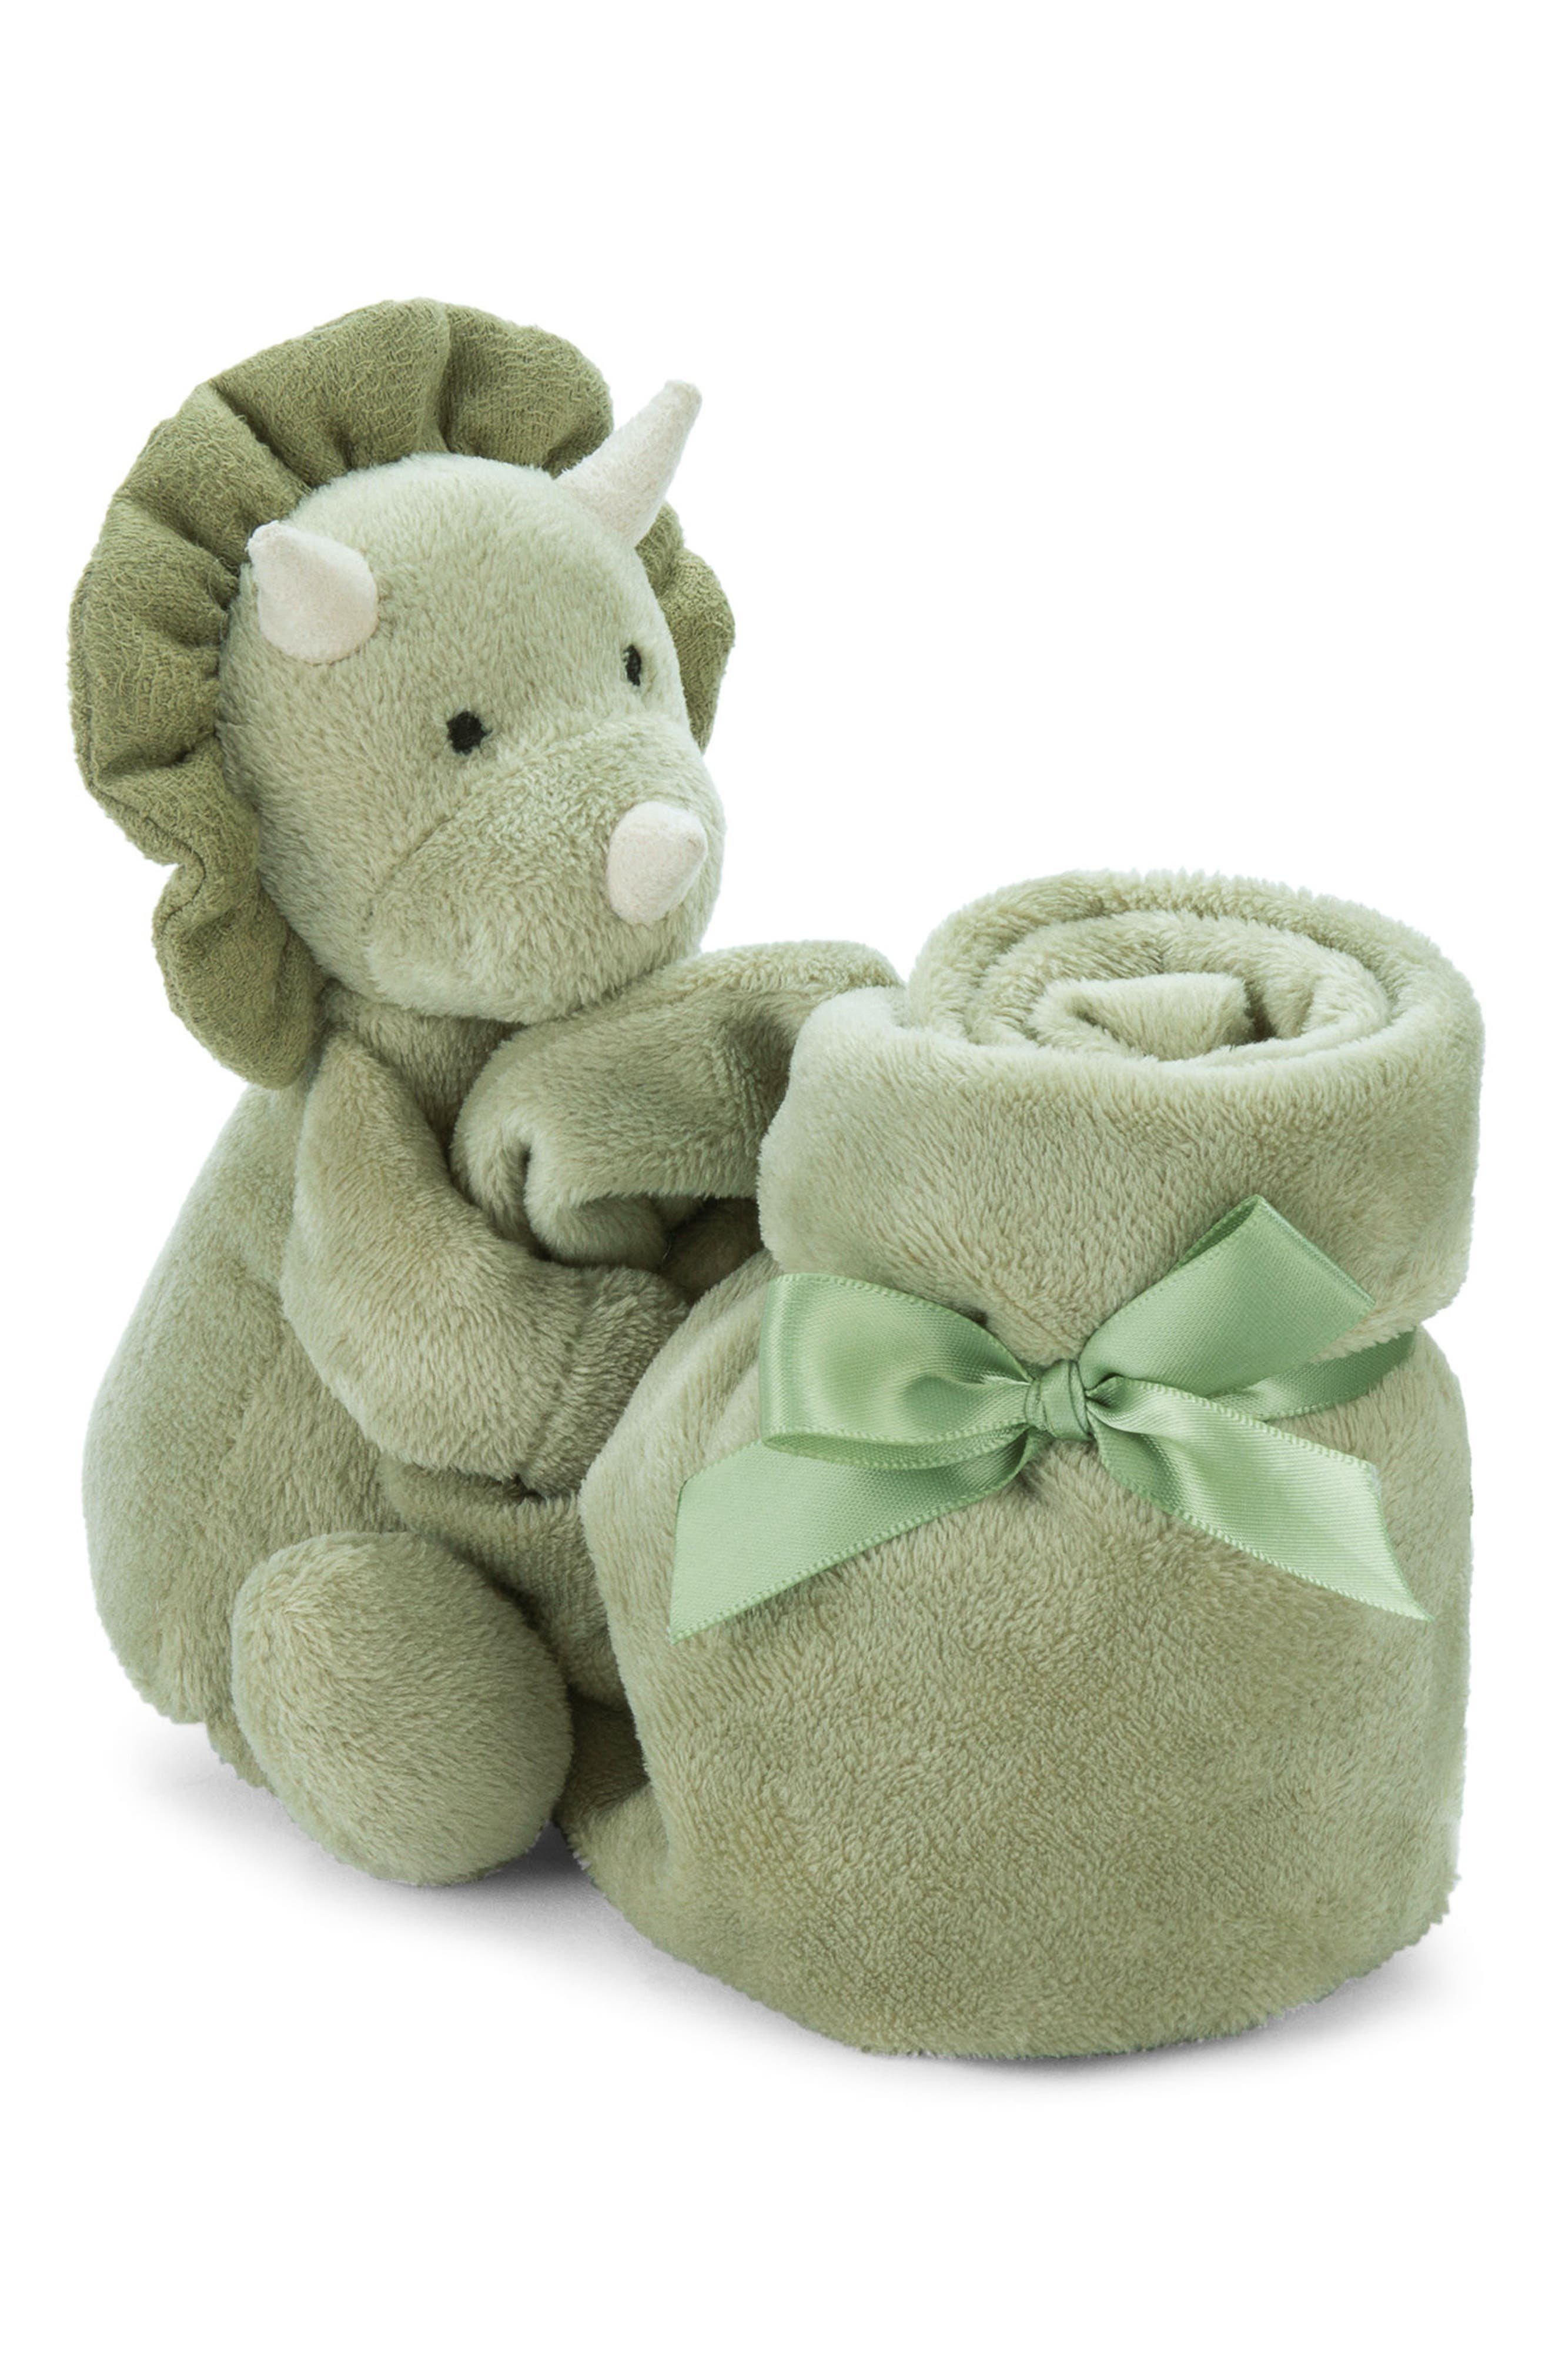 Jellycat Duffie Dino Soother Blanket